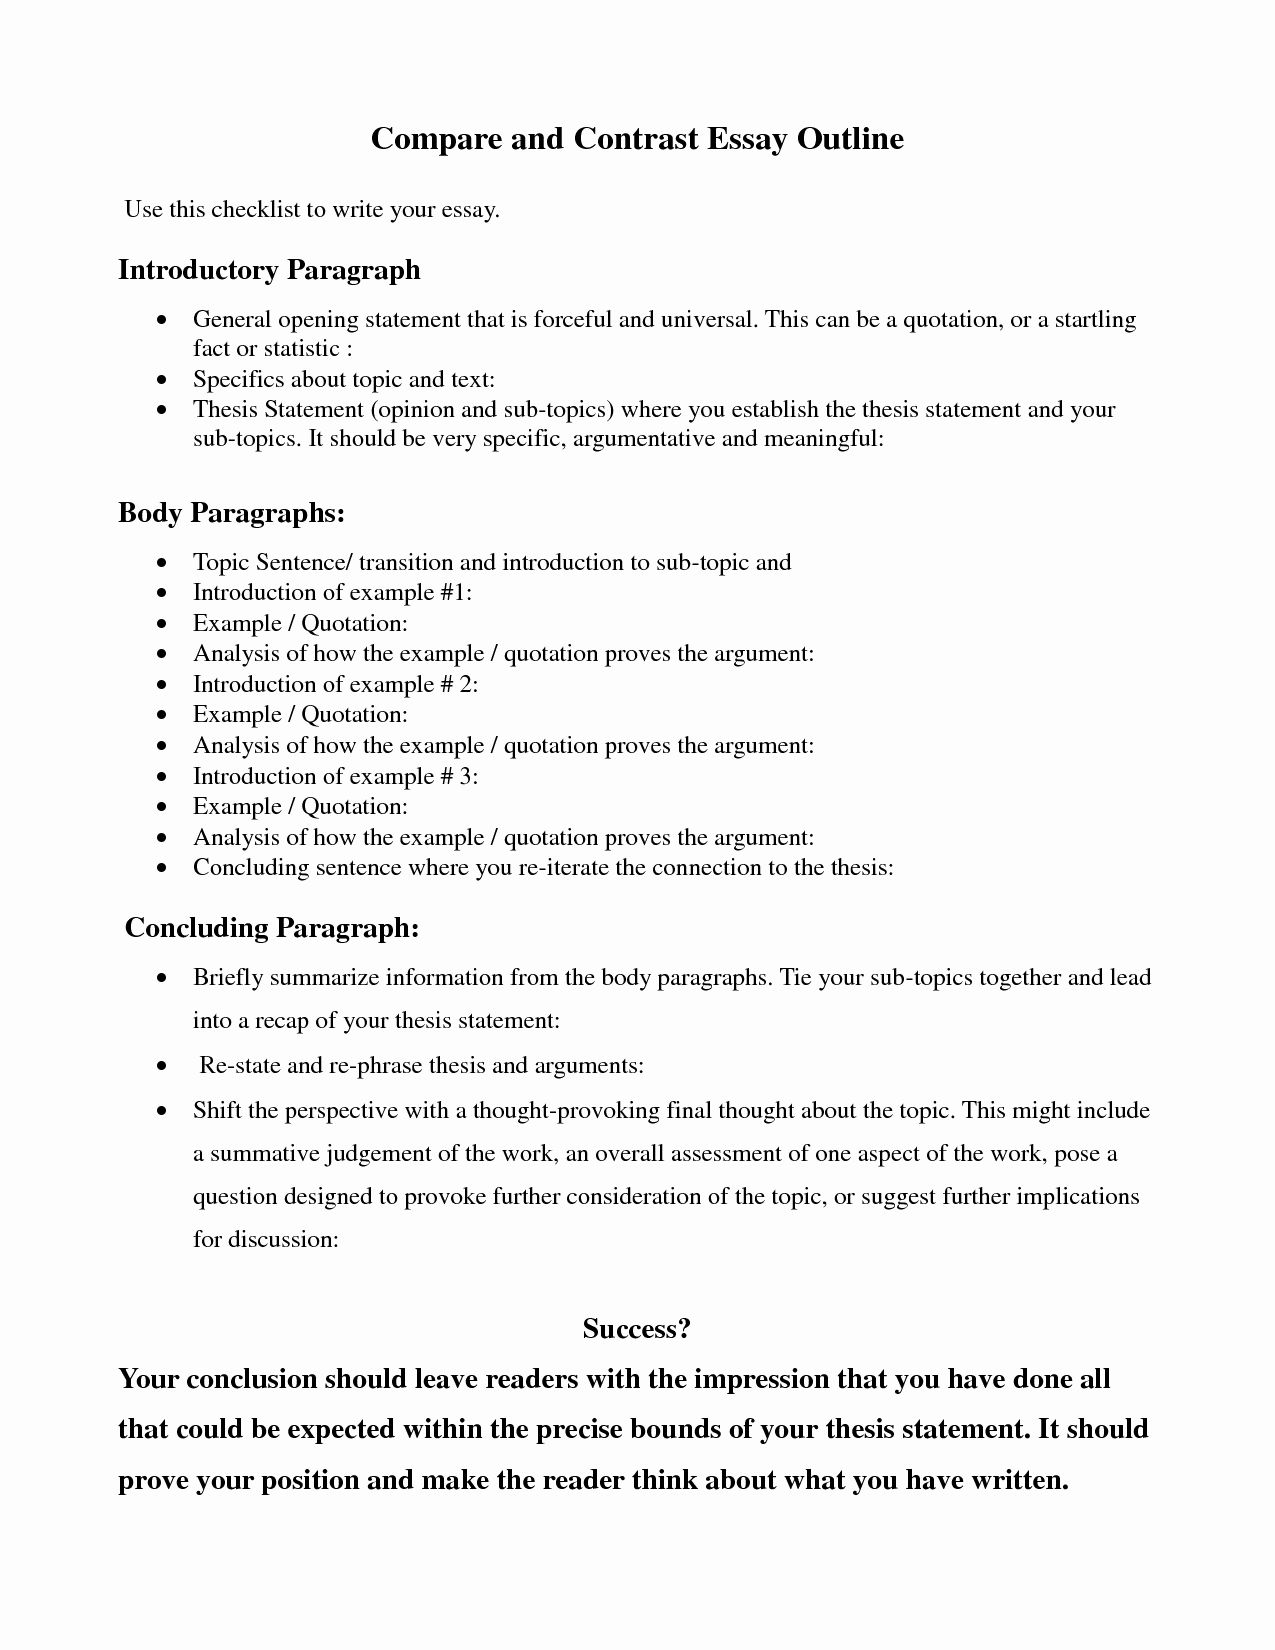 How To Outline An Essay Inspirational Pare Contrast Google Search Thesi Statement Questions Define Succes